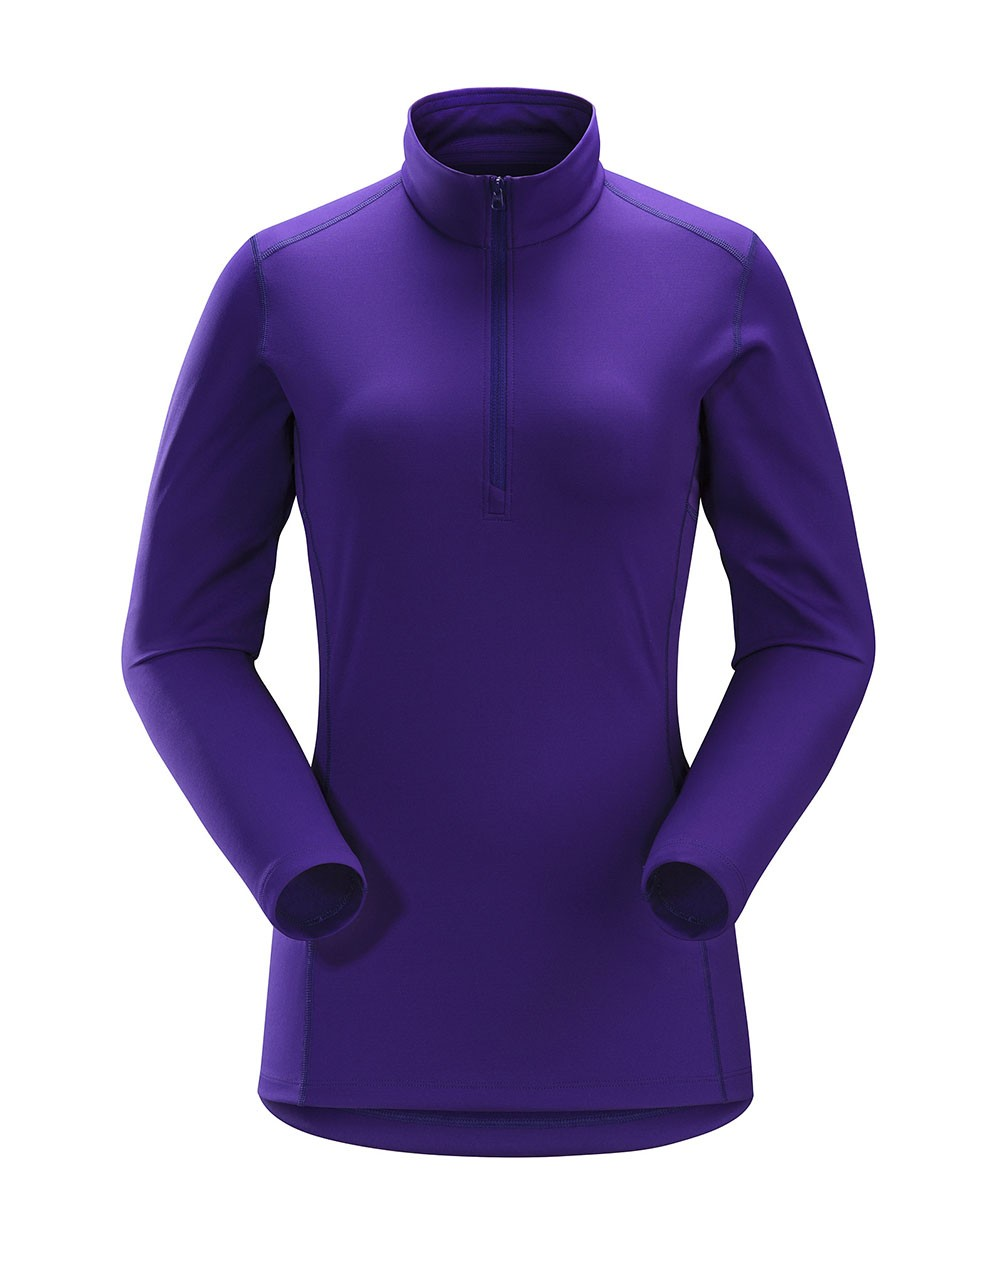 ARC'TERYX - PHASE AR ZIP NECK LS WOMEN'S - WOMEN